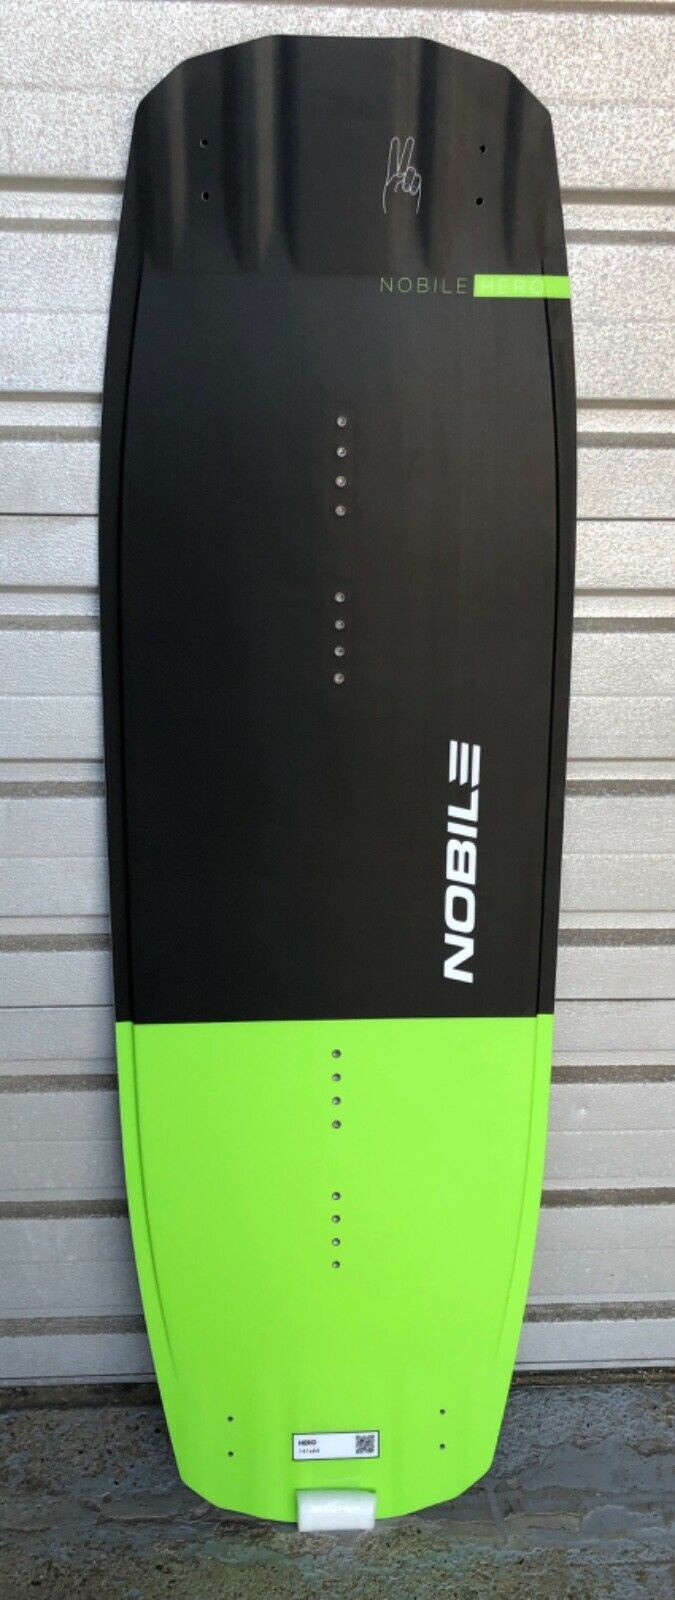 Neues Wood Nobile 141 Super Cable Wakeboard , Top Cable Board  FLEX